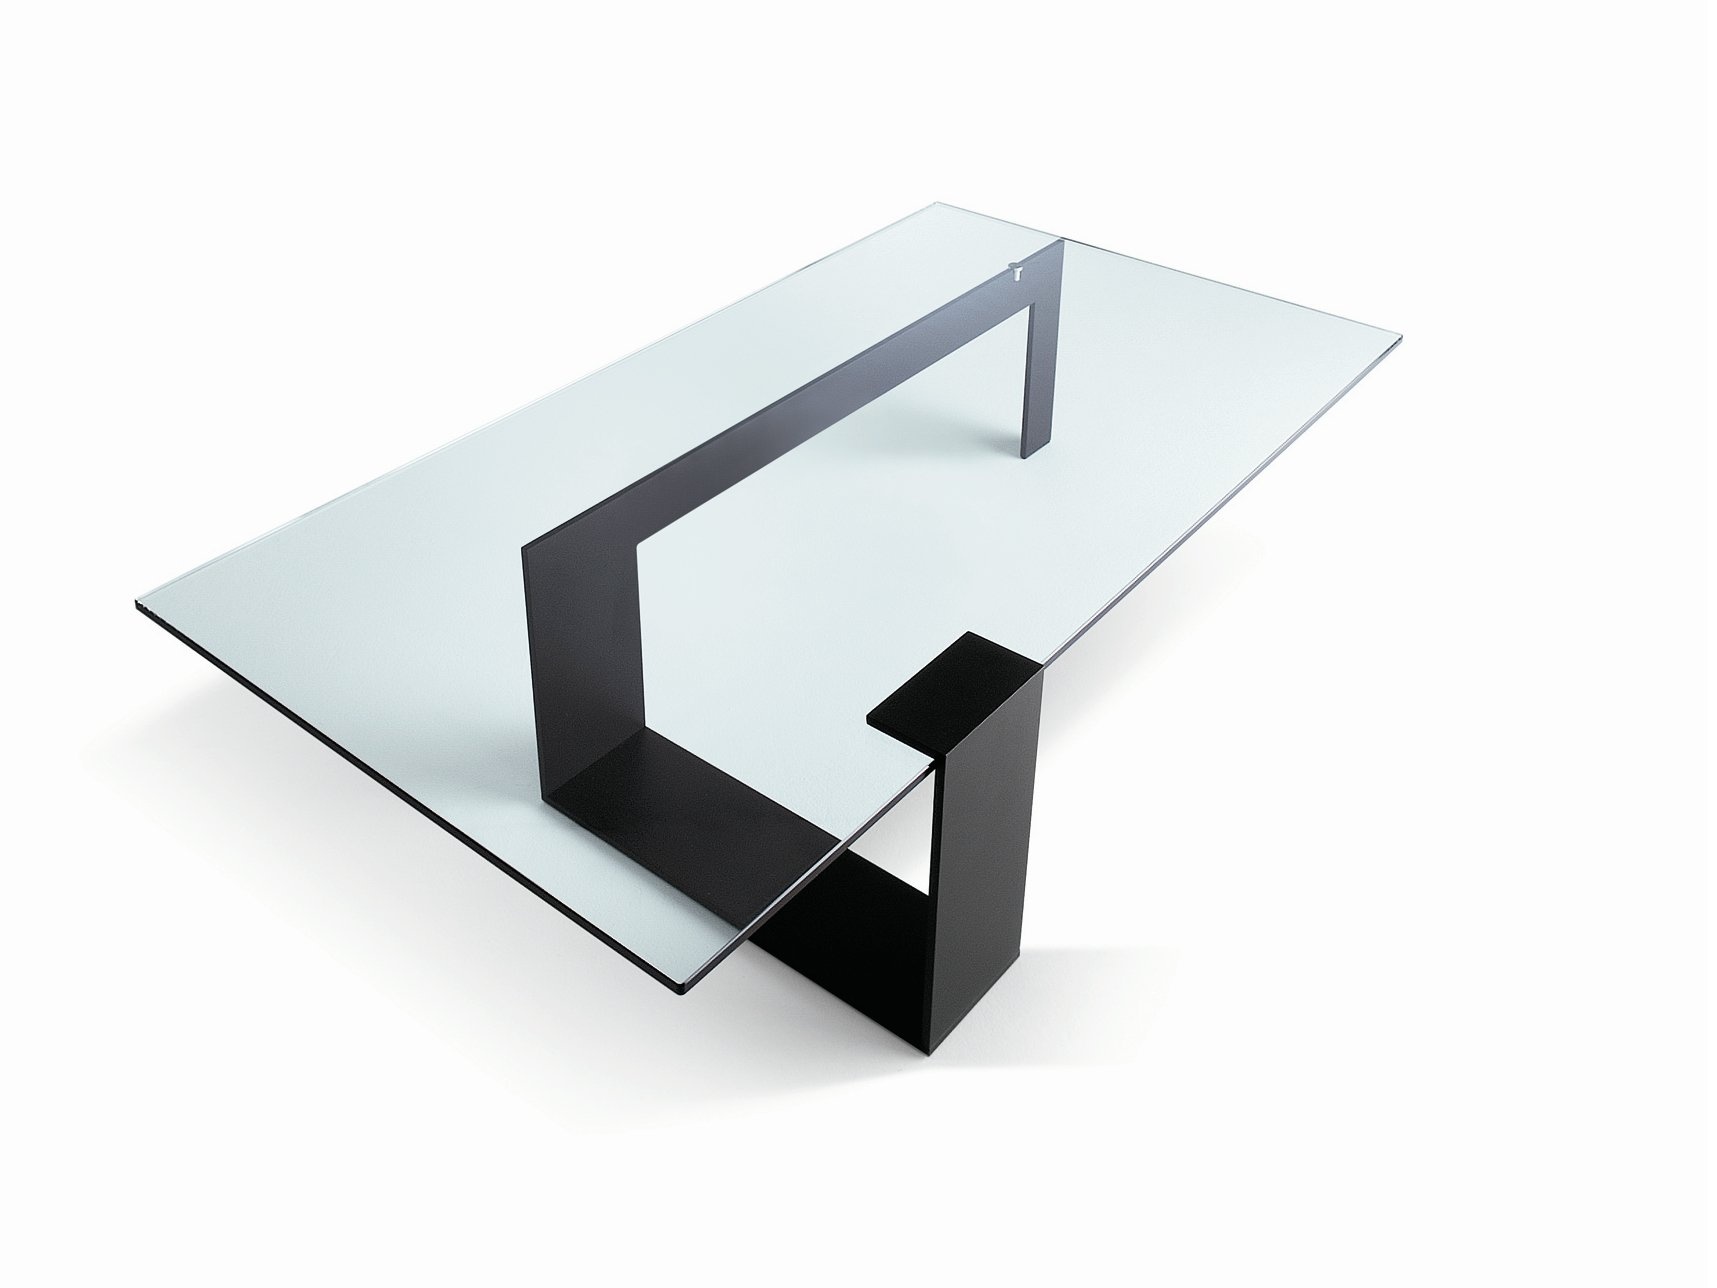 Table basse en verre plinsky by t d tonelli design design - Table basse en verre design ...